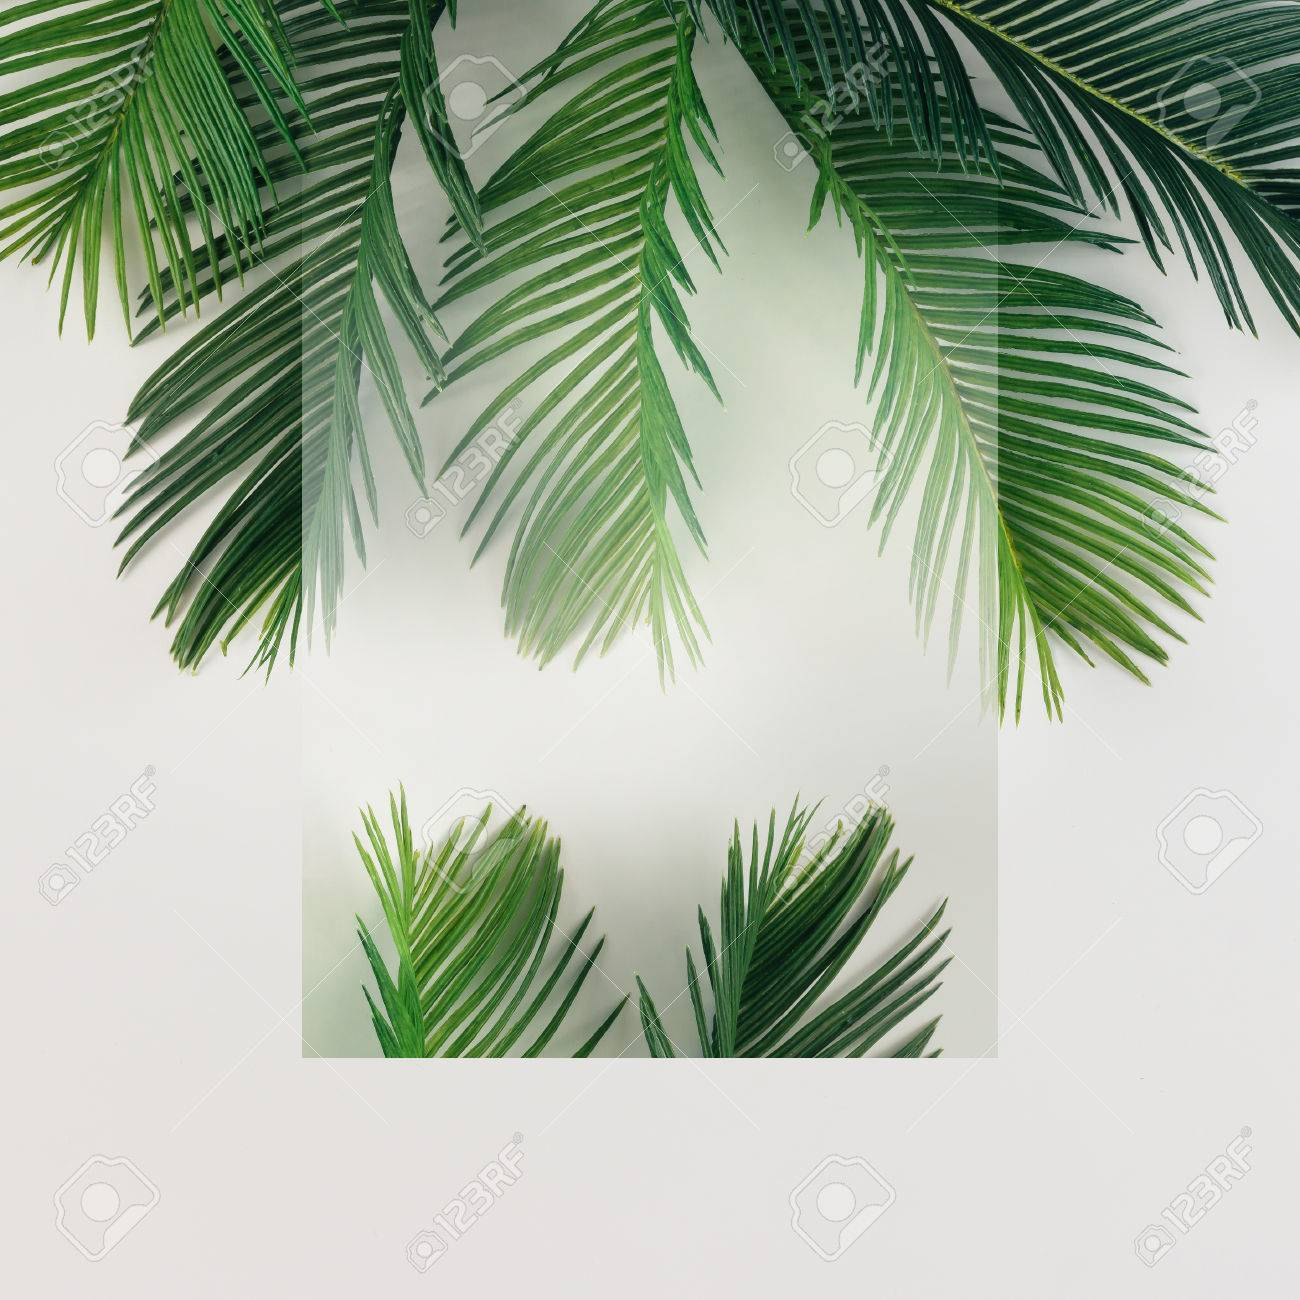 YongFoto 6.5x6.5ft Palm Tree Leaves Backdrop Cartoon Watercolor Photography Background Baby Shower Birthday Holiday Party Interior Decor Kids Adult Portarit Photo Shoot Studio Props Wallpaper